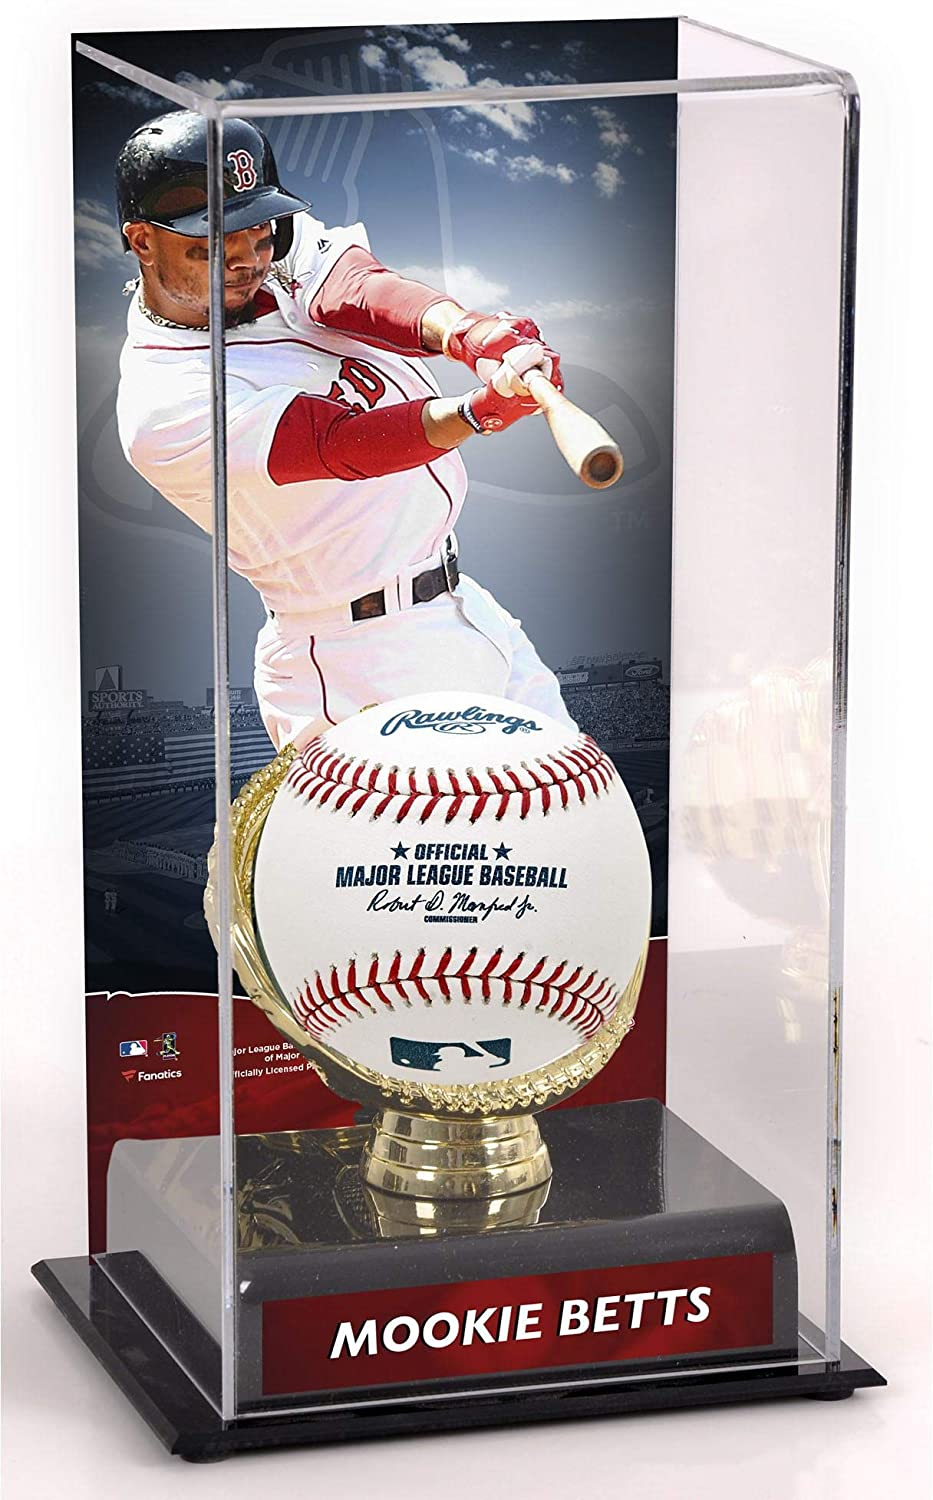 Mookie Betts Boston Red Sox Sublimated Display Case with Image Baseball Free Standing Display Cases